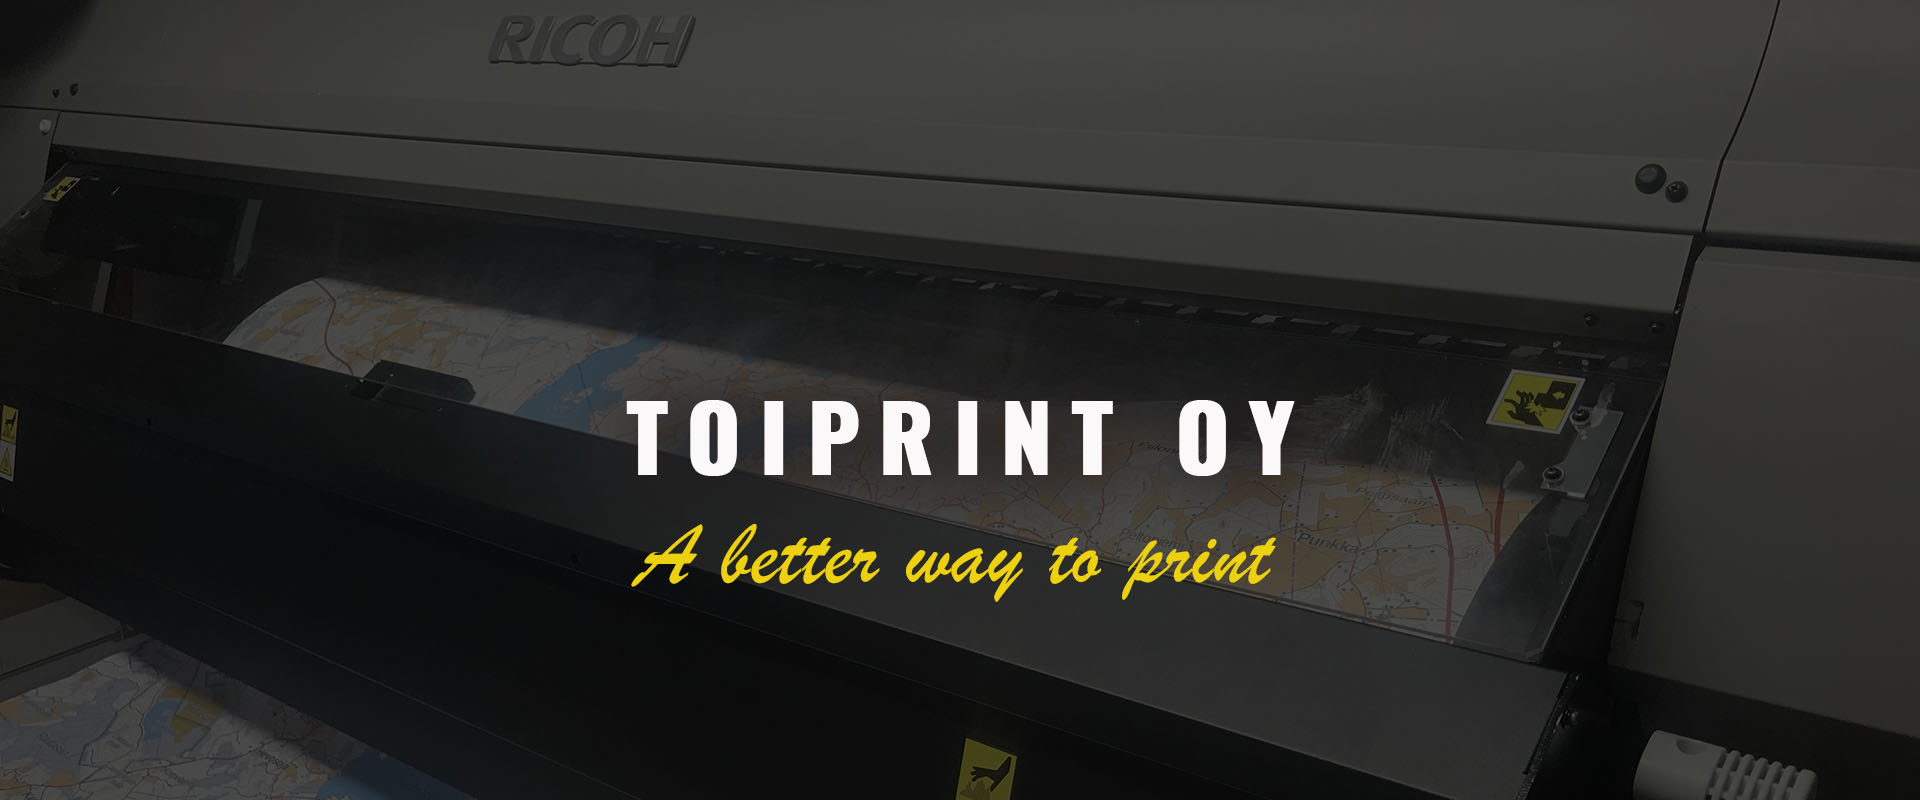 Toiprint Oy - A better way to print in Tampere